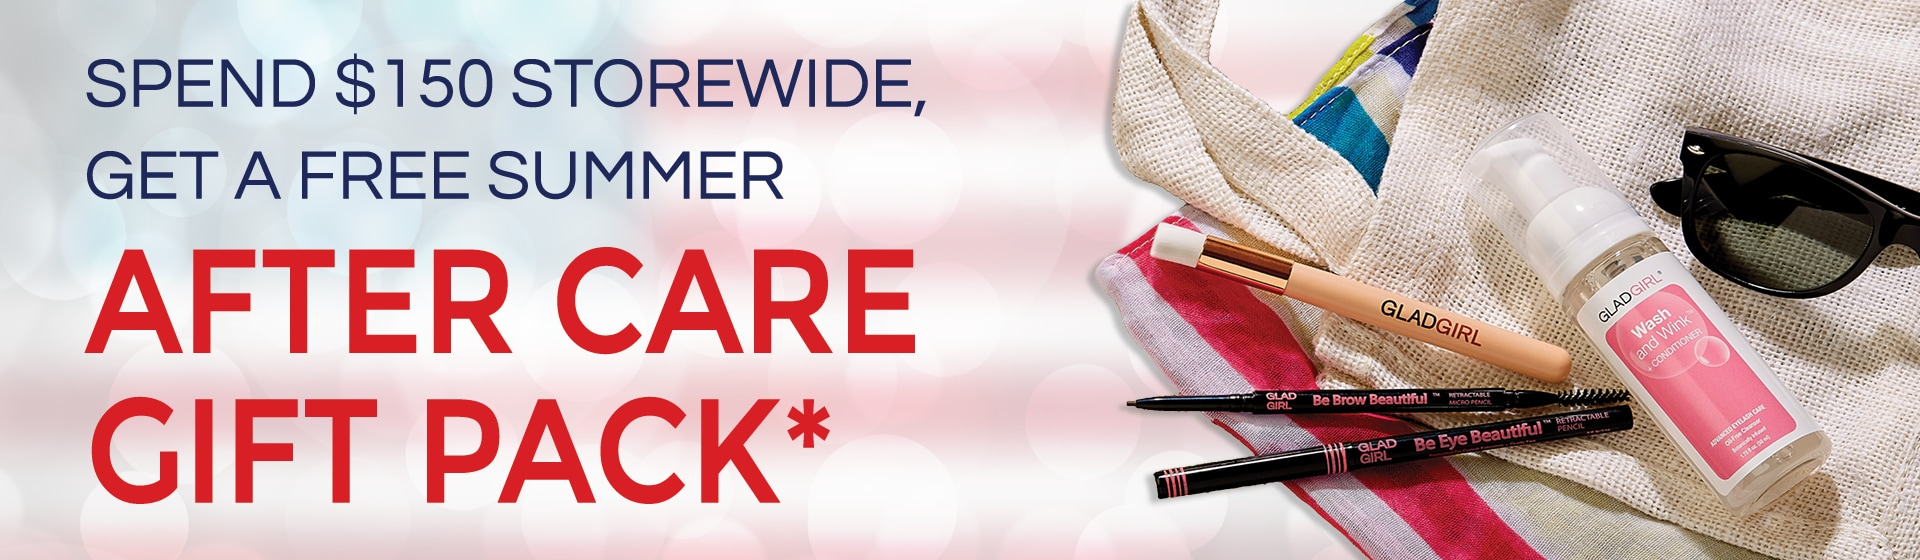 Spend $150 storewide, get a free summer after care gift pack